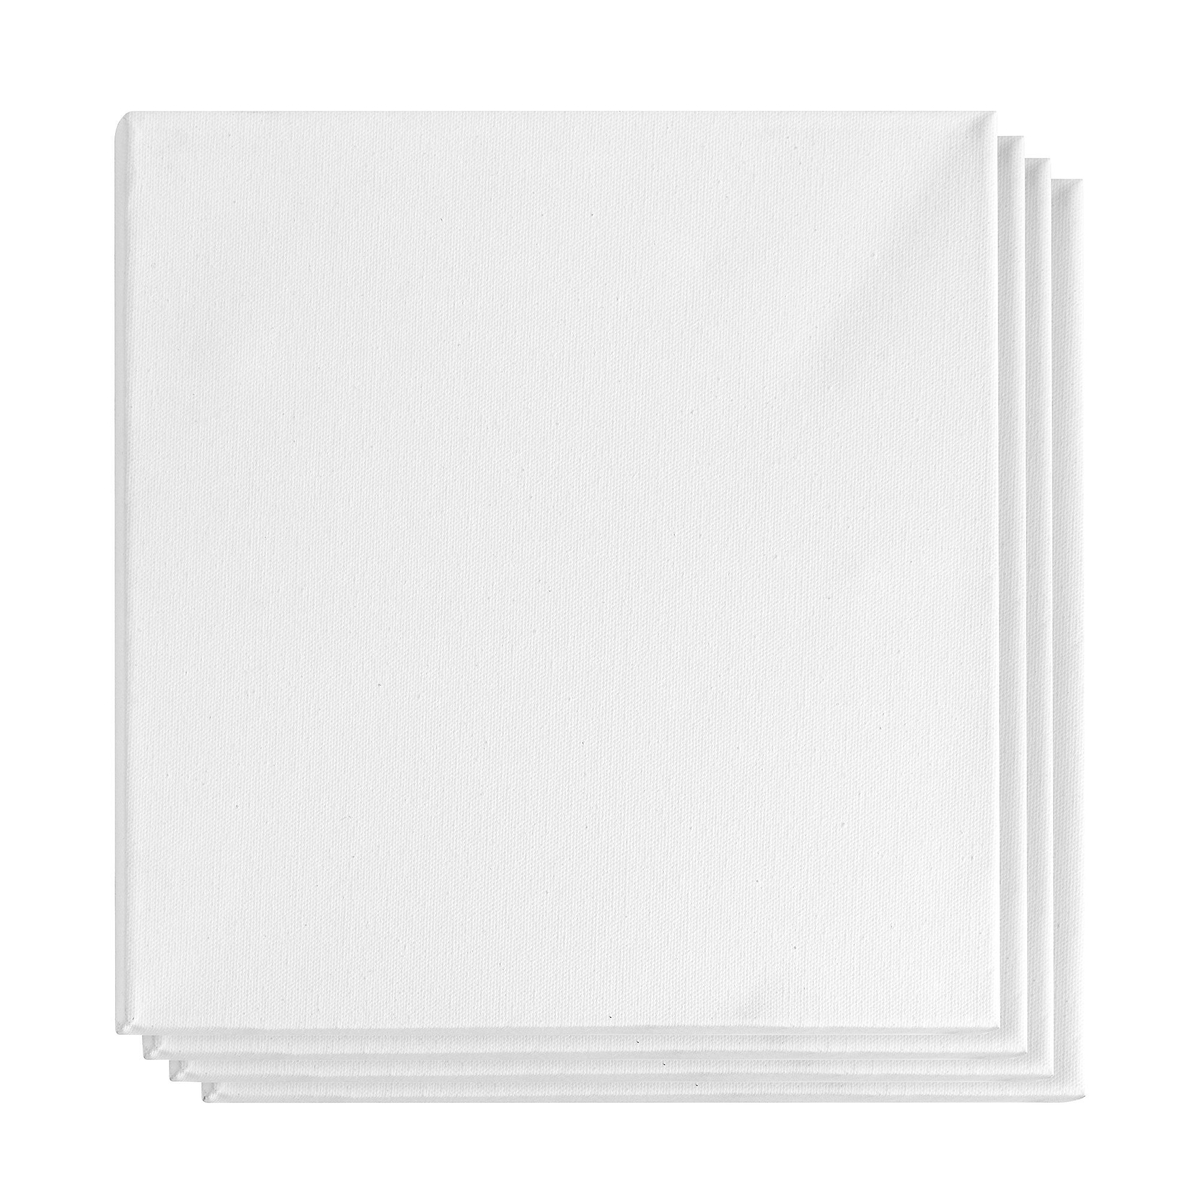 Stretched Canvas 4-pack 30x30